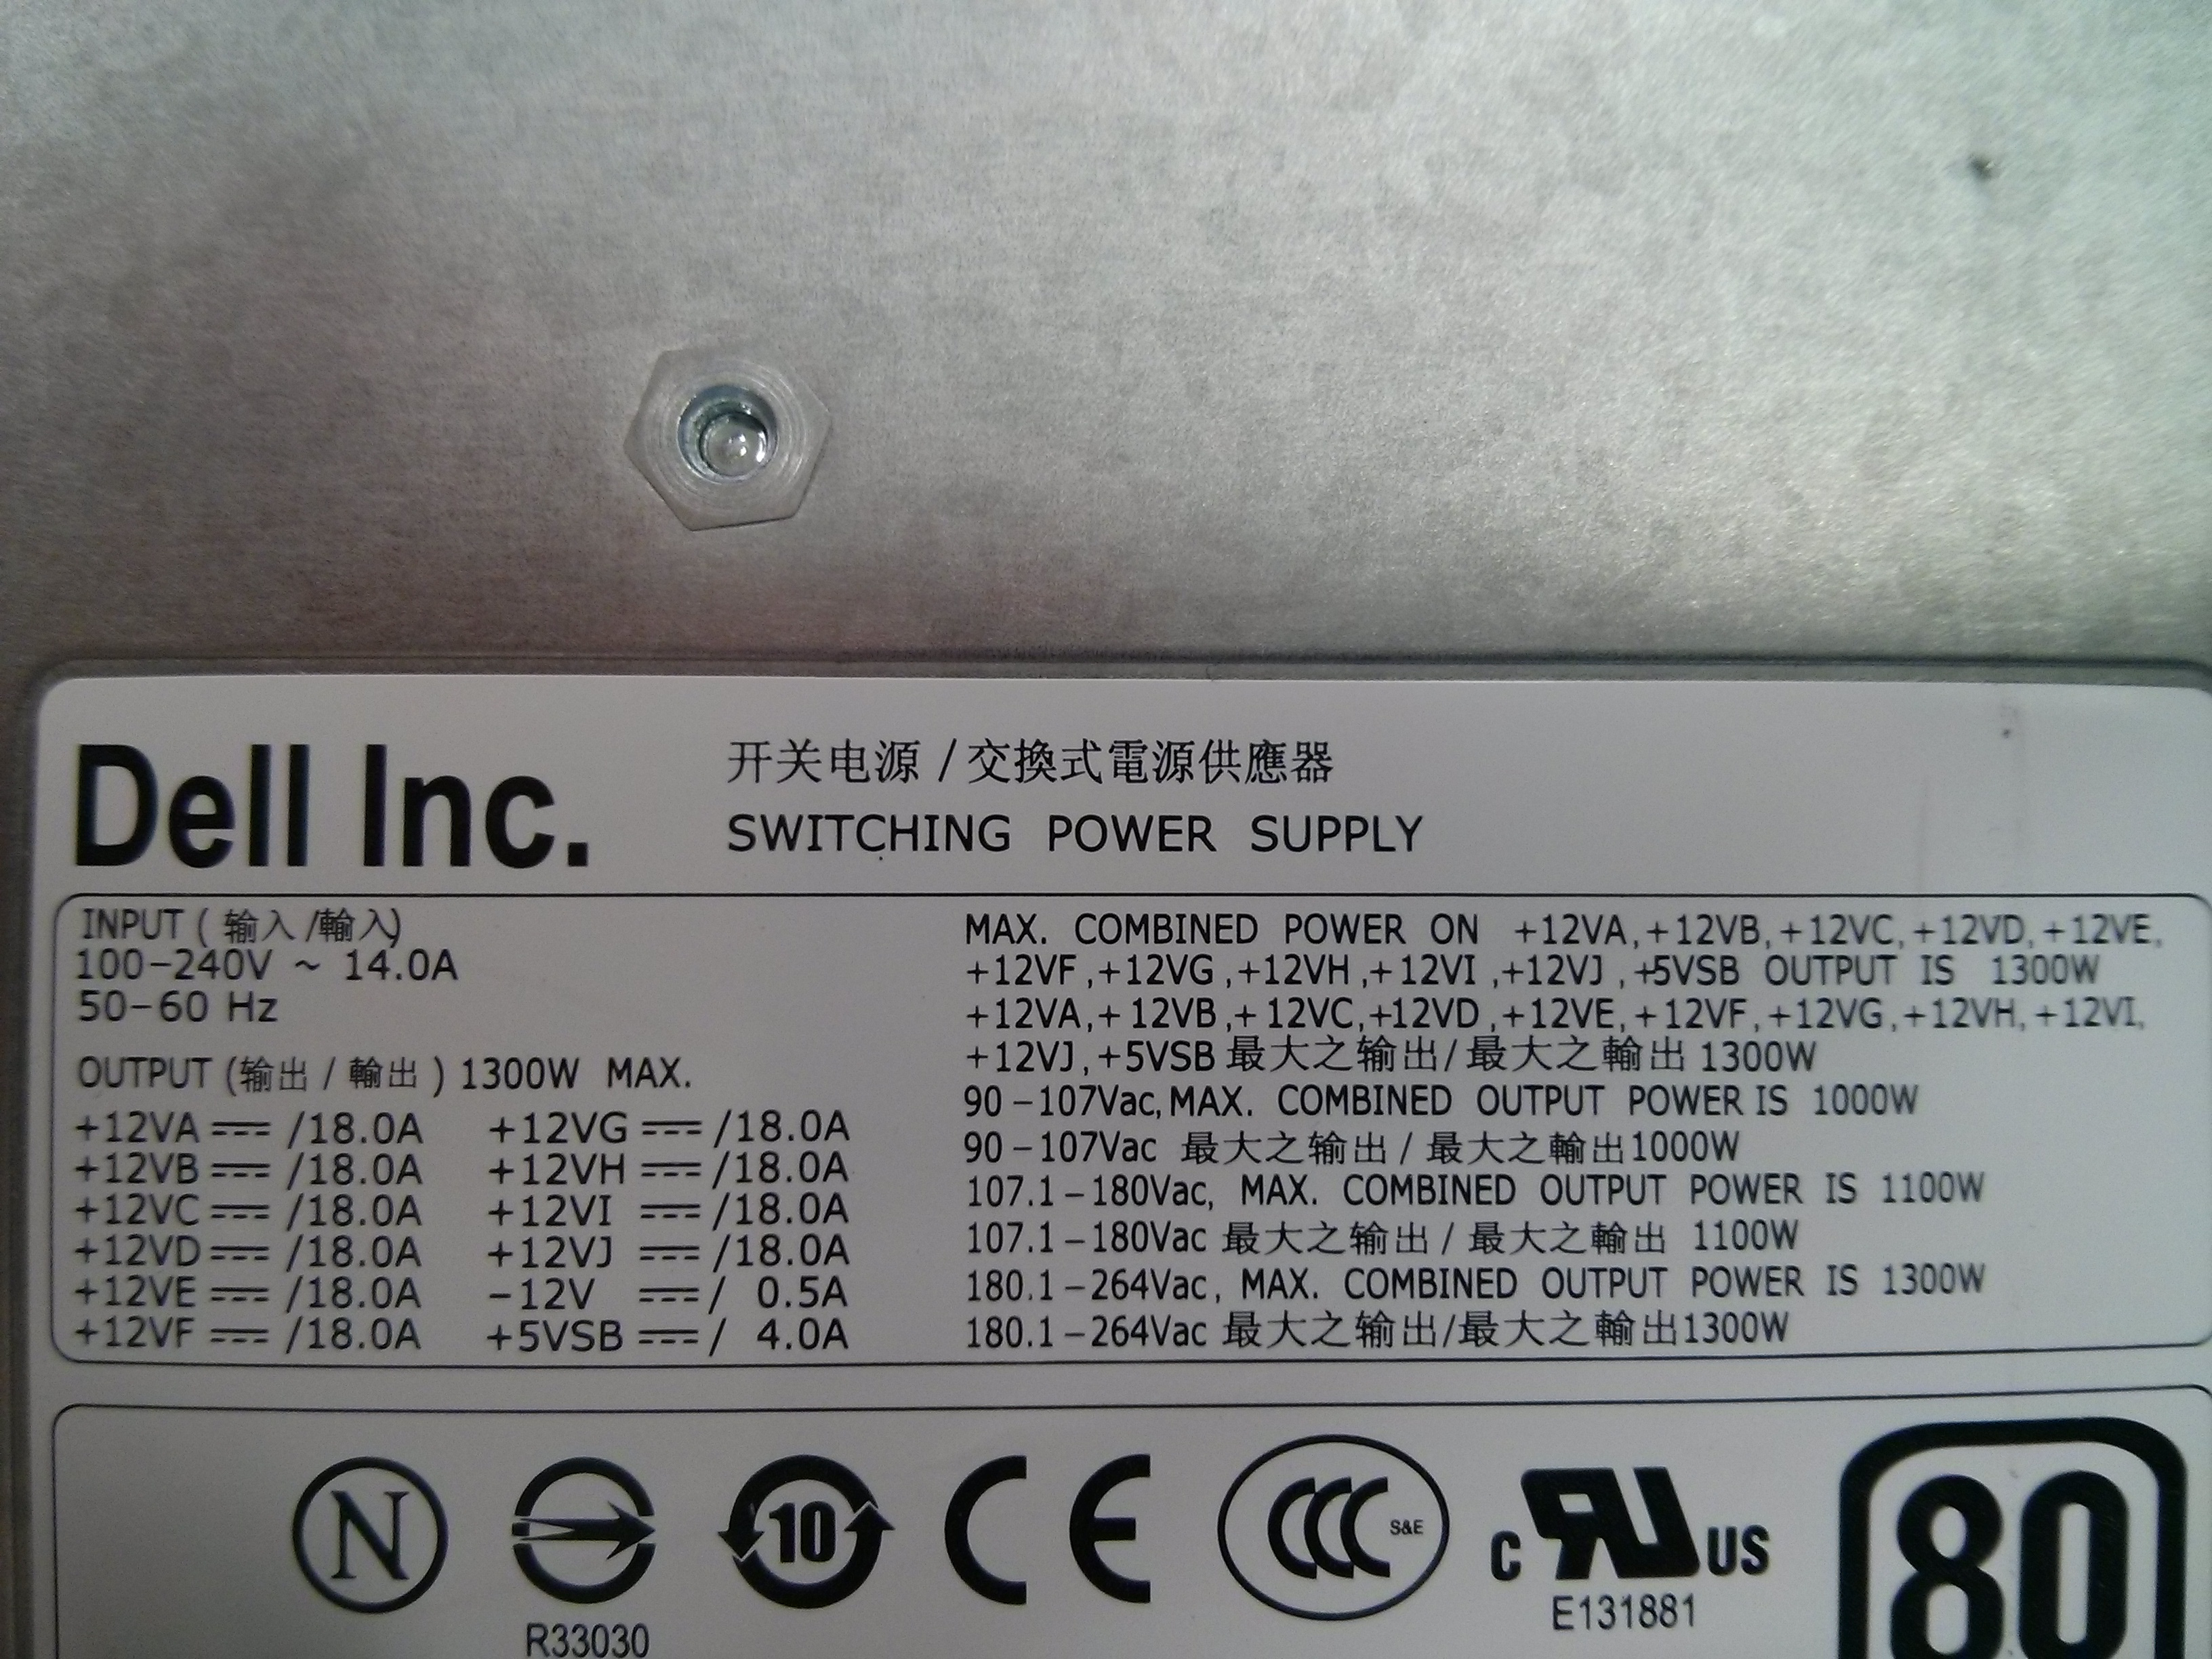 Dell 1300w Workstation Power Supply Load Table An 1000w Wiring Diagram I Think The Is Way It Due To Multi Rail But Thought Would Be Fun Post In Here For You Lovely People Have A Prod At